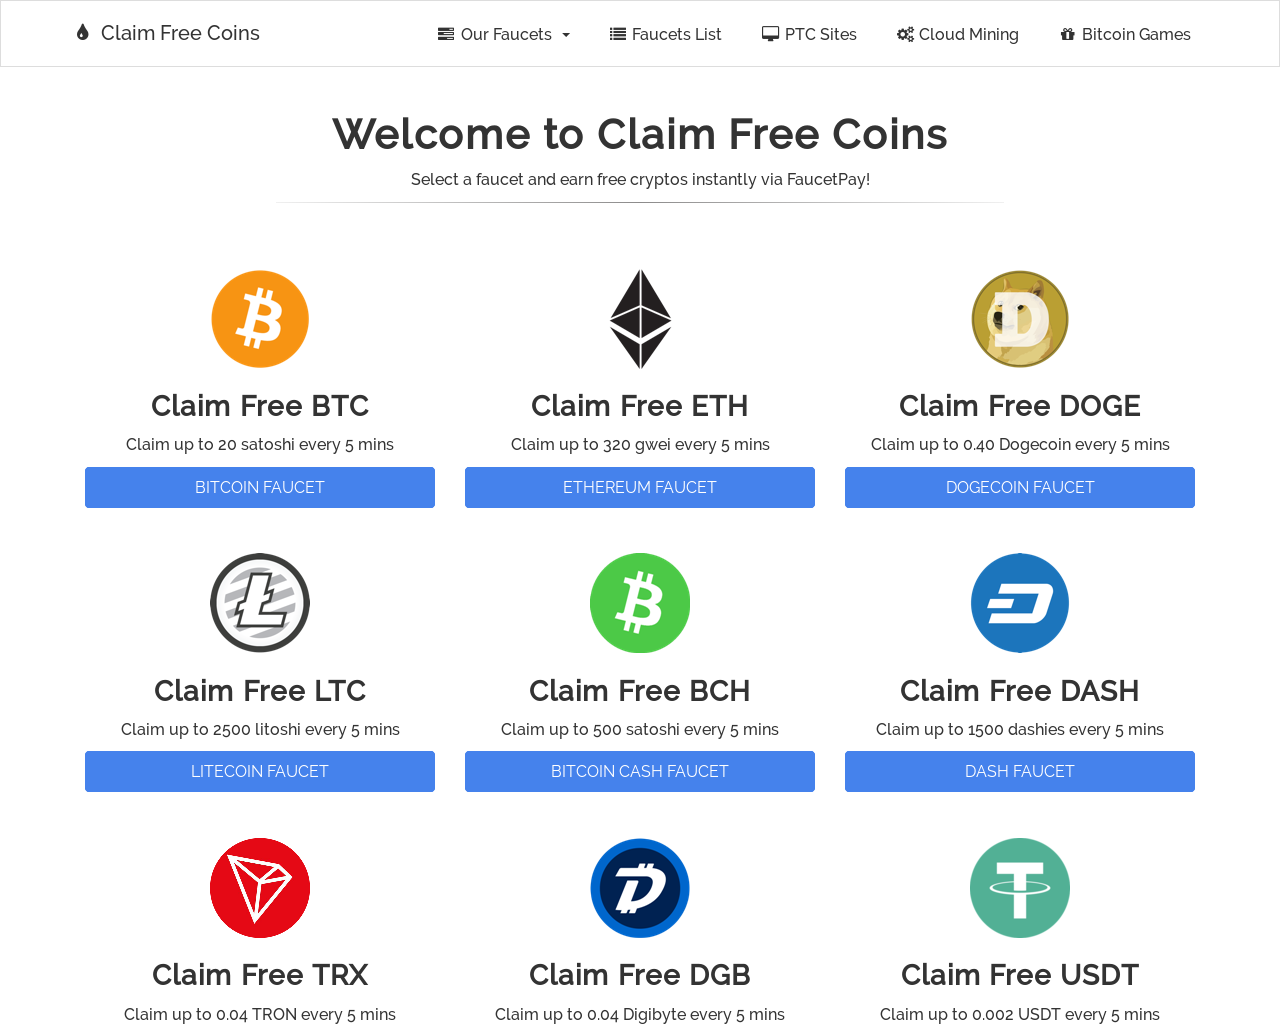 Claimfreecoins